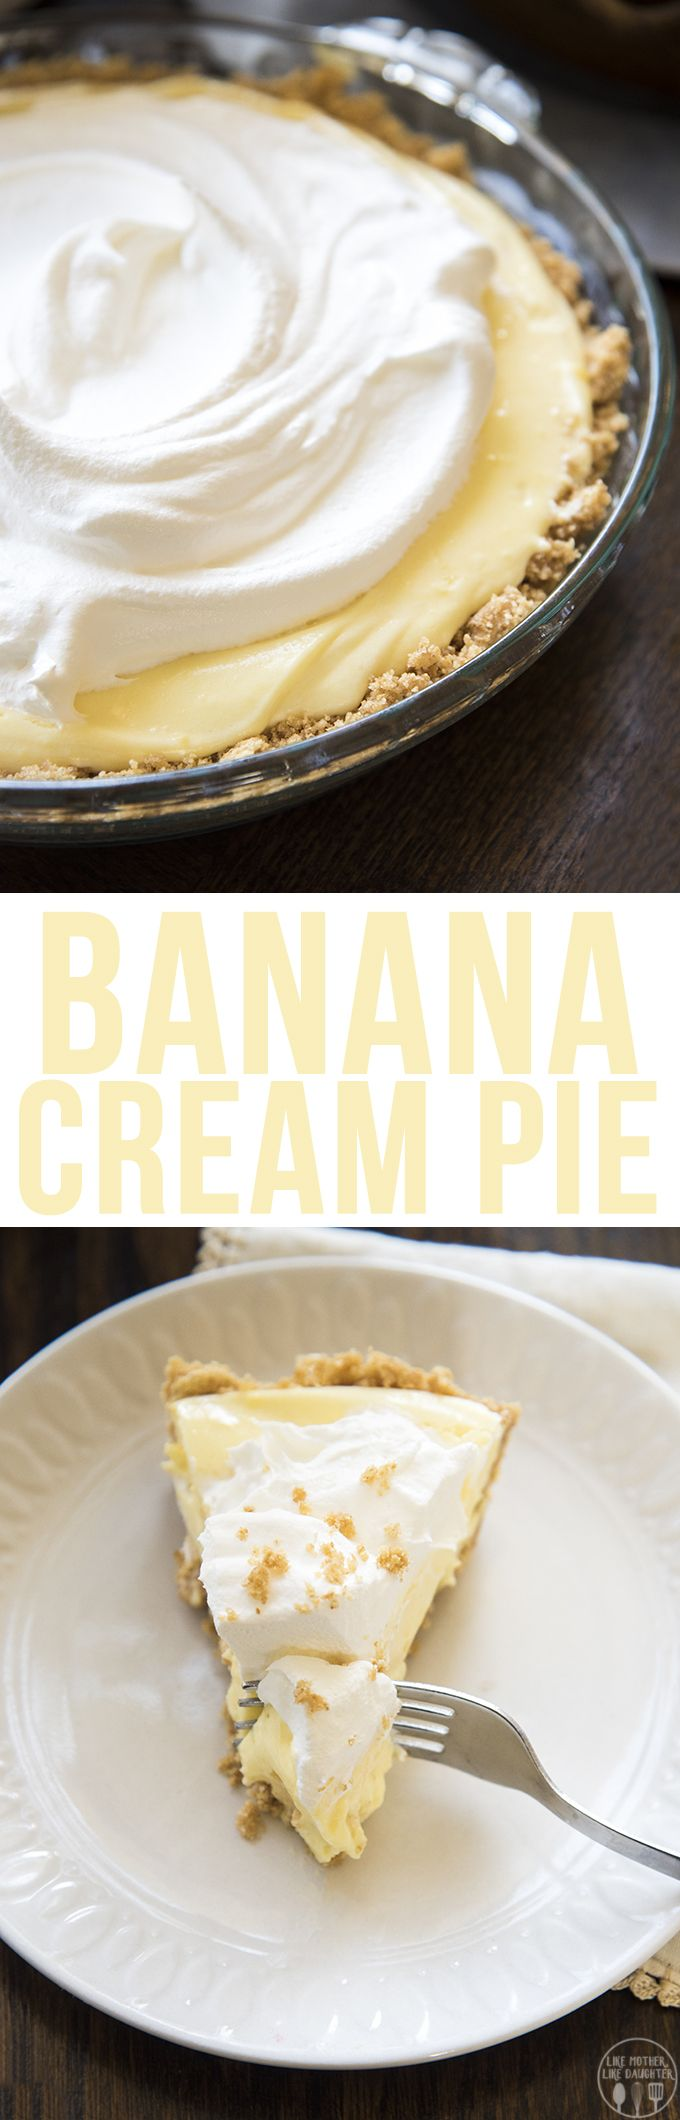 Banana Cream Pie - This delicious and simple banana cream pie is full of banana flavor with a perfect buttery graham cracker crust!